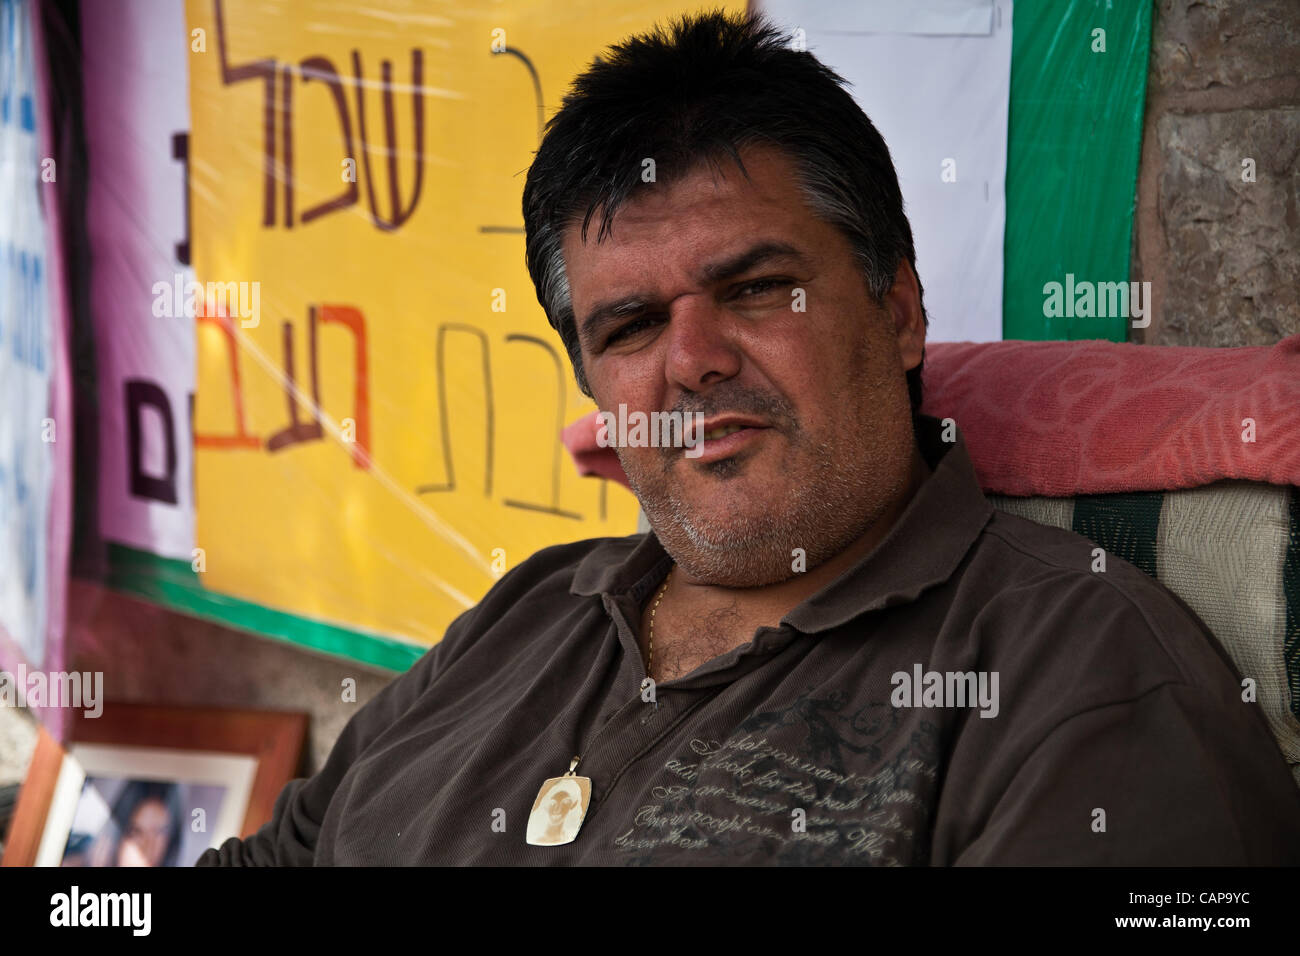 Kobi Sarusi, who lost his 14 year old daughter, Linoi Sarusi, to a terrorist attack in October 2002, wears a pendant - Stock Image